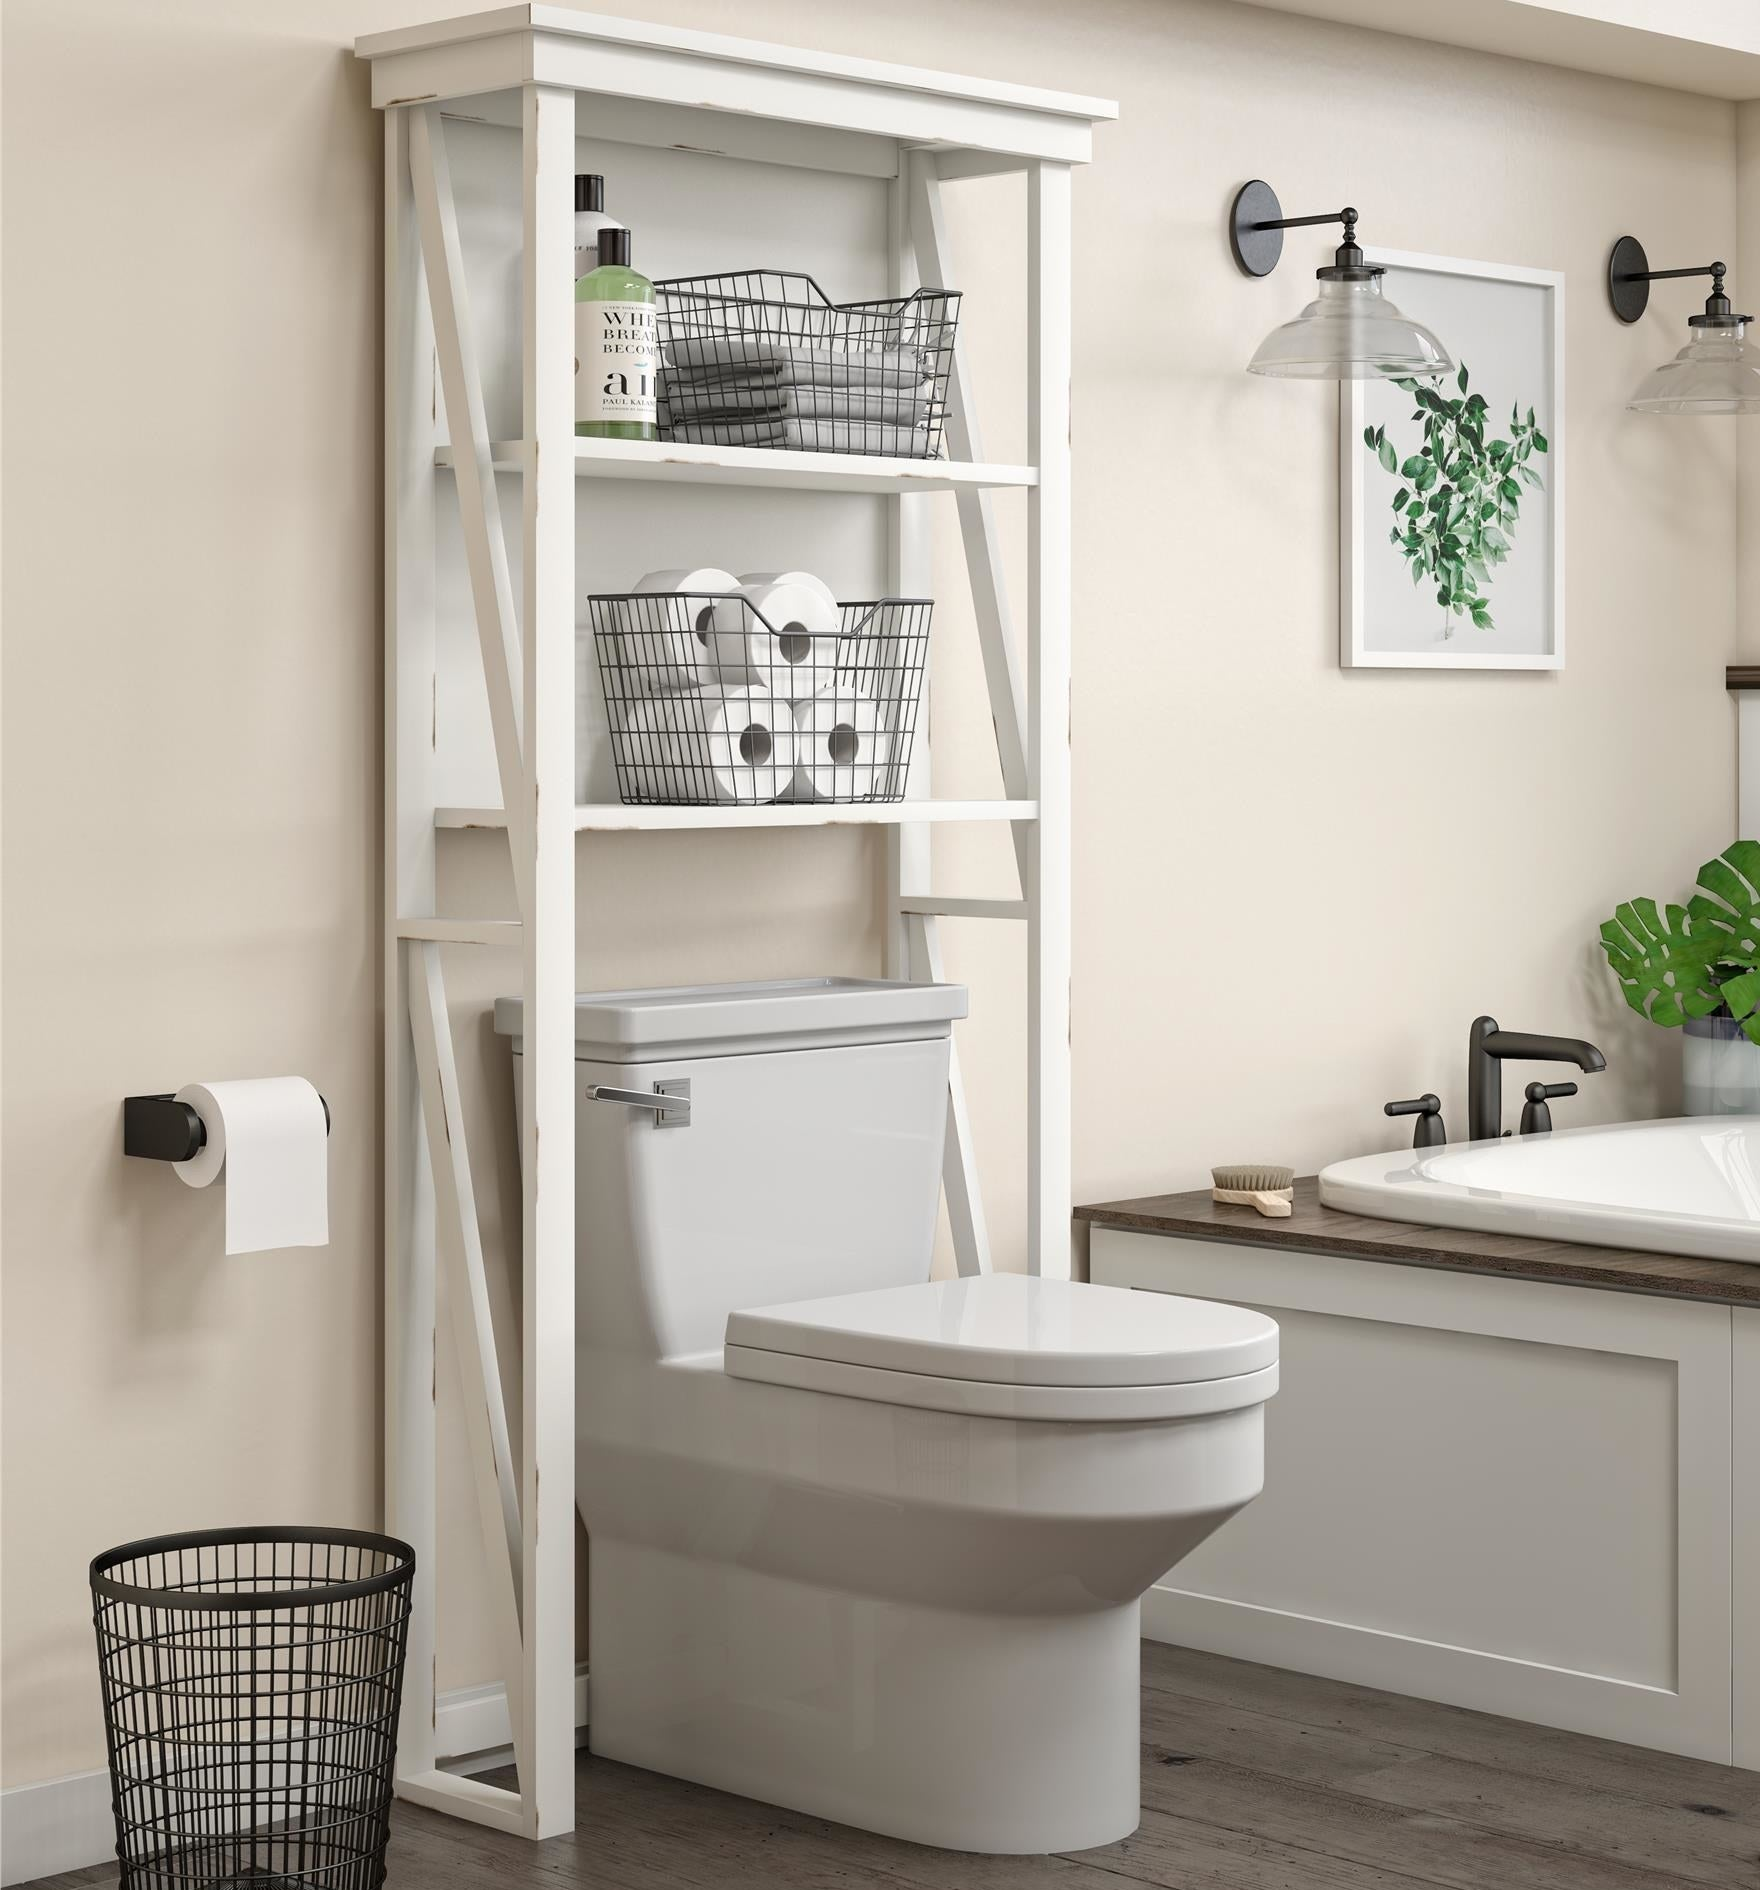 The over-the-toilet open storage cabinet with two shelves